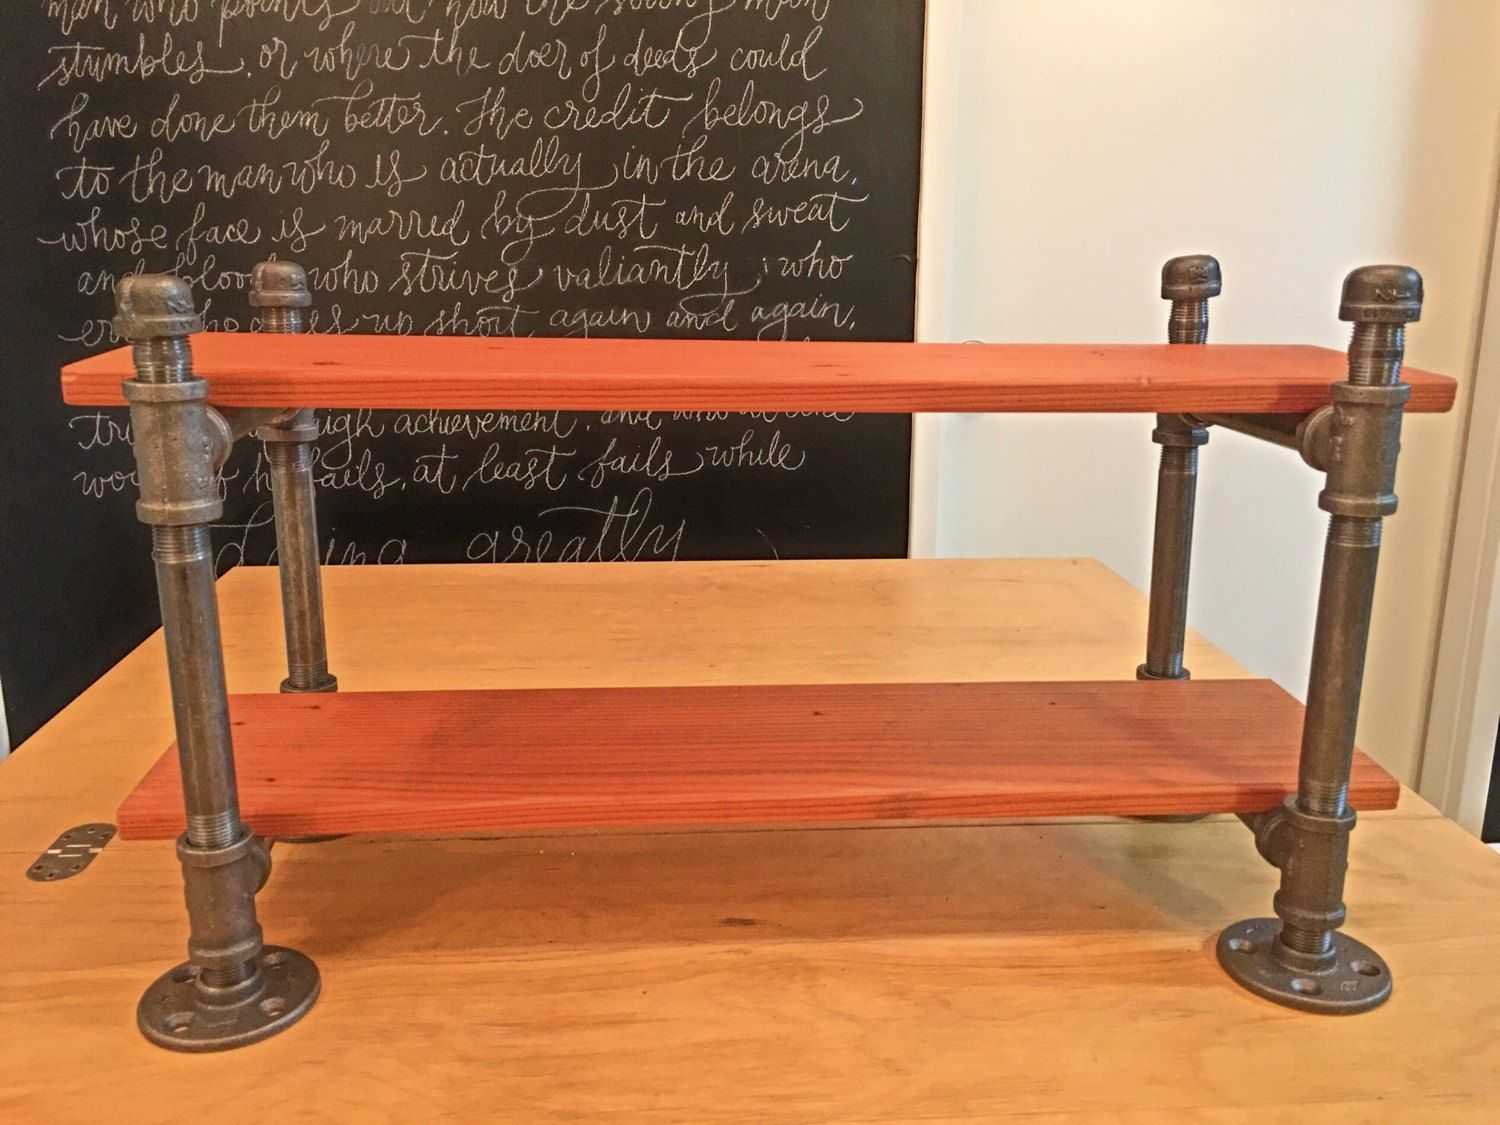 steel pipe furniture. Steel Pipe Furniture. Iron Desk Shelf, Industrial Decor, Furniture\\u2026 Furniture N